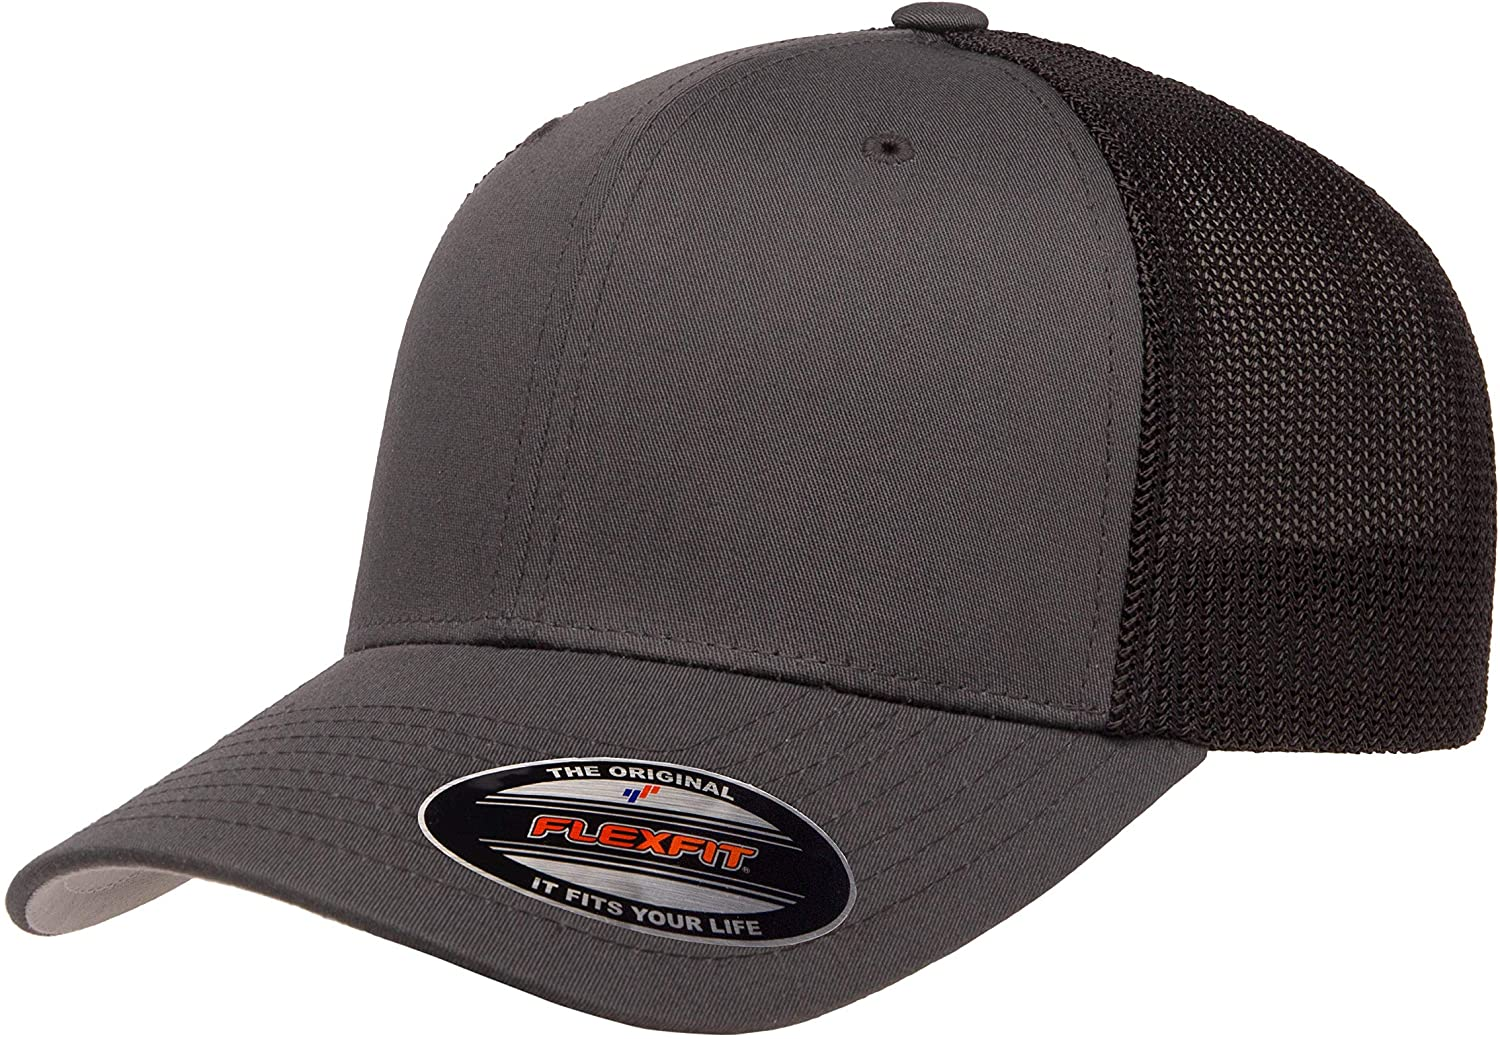 Flexfit Unisex-Adult's Trucker Mesh Cap, Black: Flexfit: Clothing